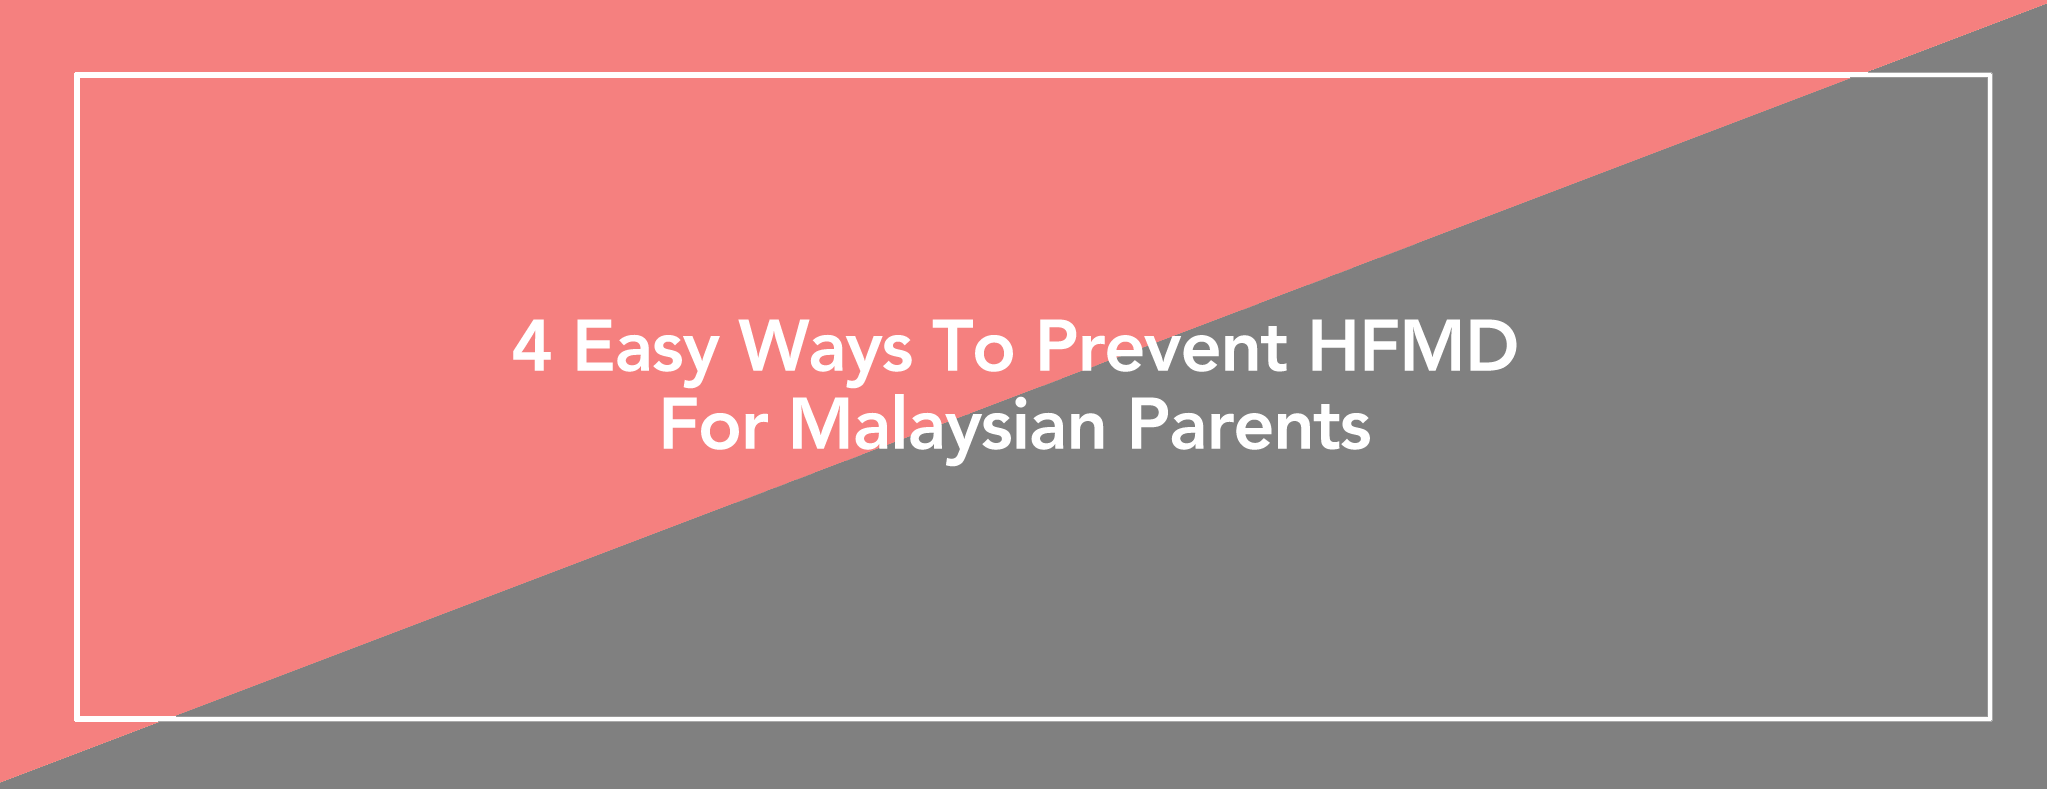 4 Easy Ways To Prevent HFMD For Malaysian Parents